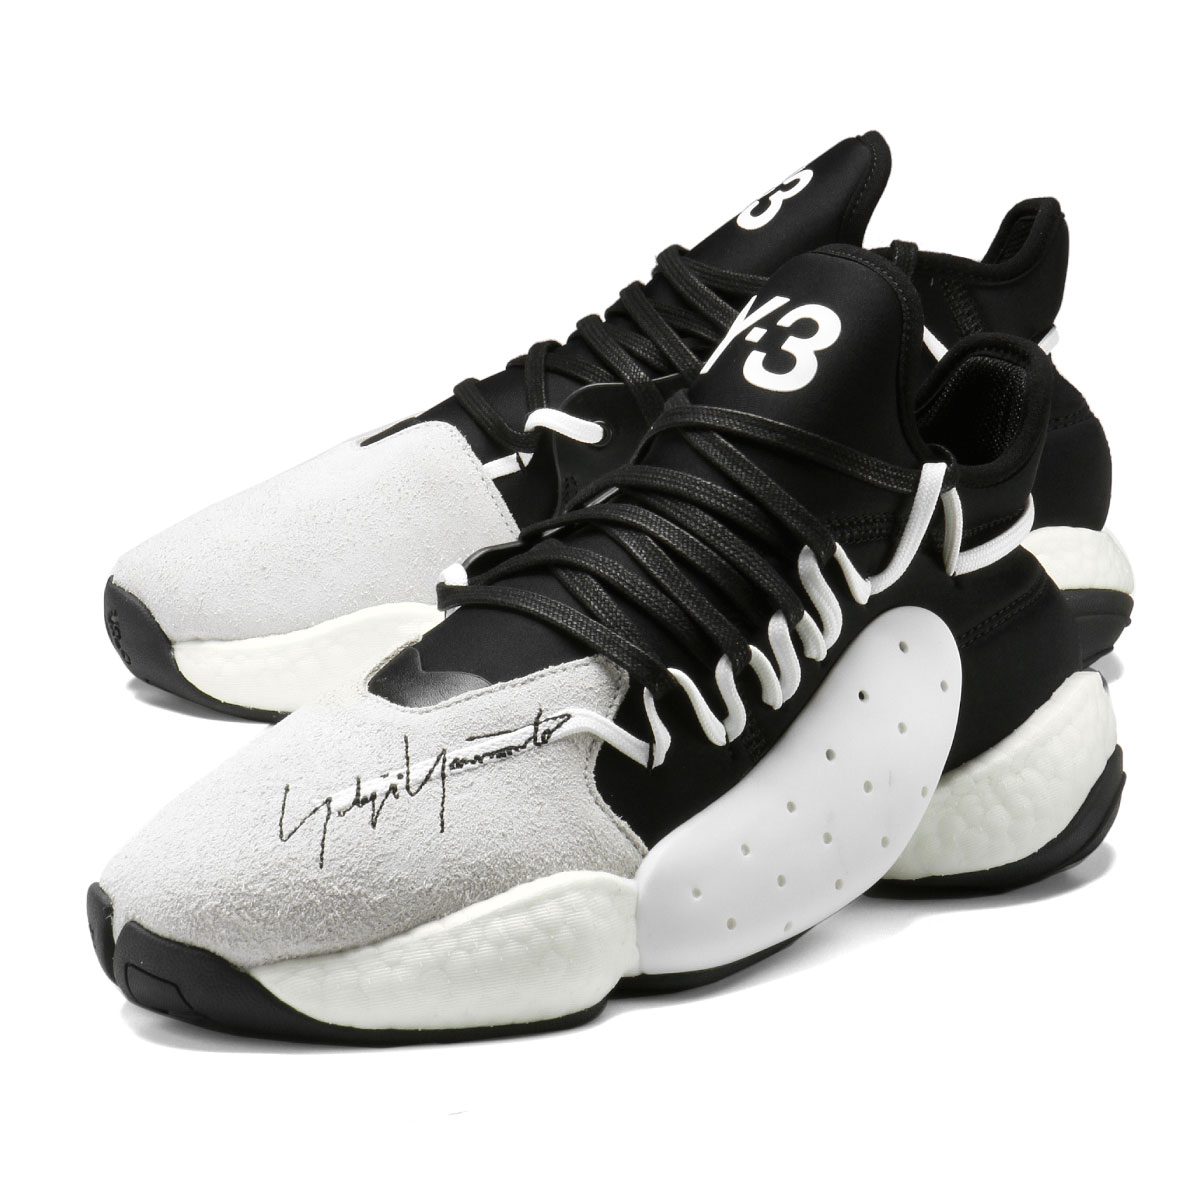 premium selection a9313 d3619 importshopdouble  Weiss Lee Y-3 shoes men BC0337 sneakers BYW BBALL boost  youware B ball FTWWHT BLACK BLACK black   white   Rakuten Global Market